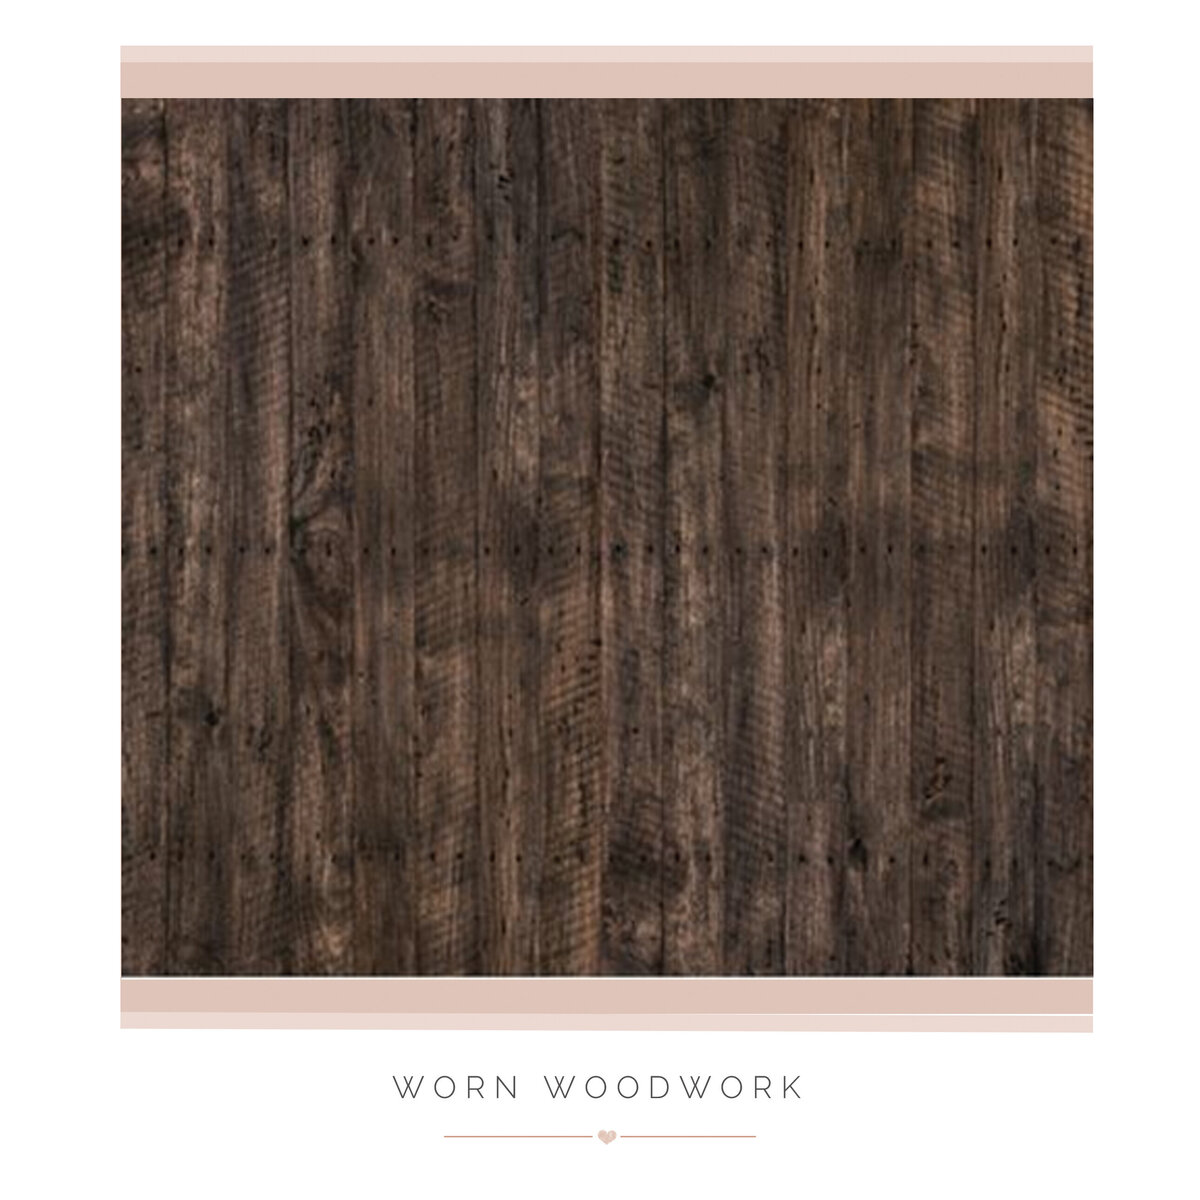 Worn Woodwork